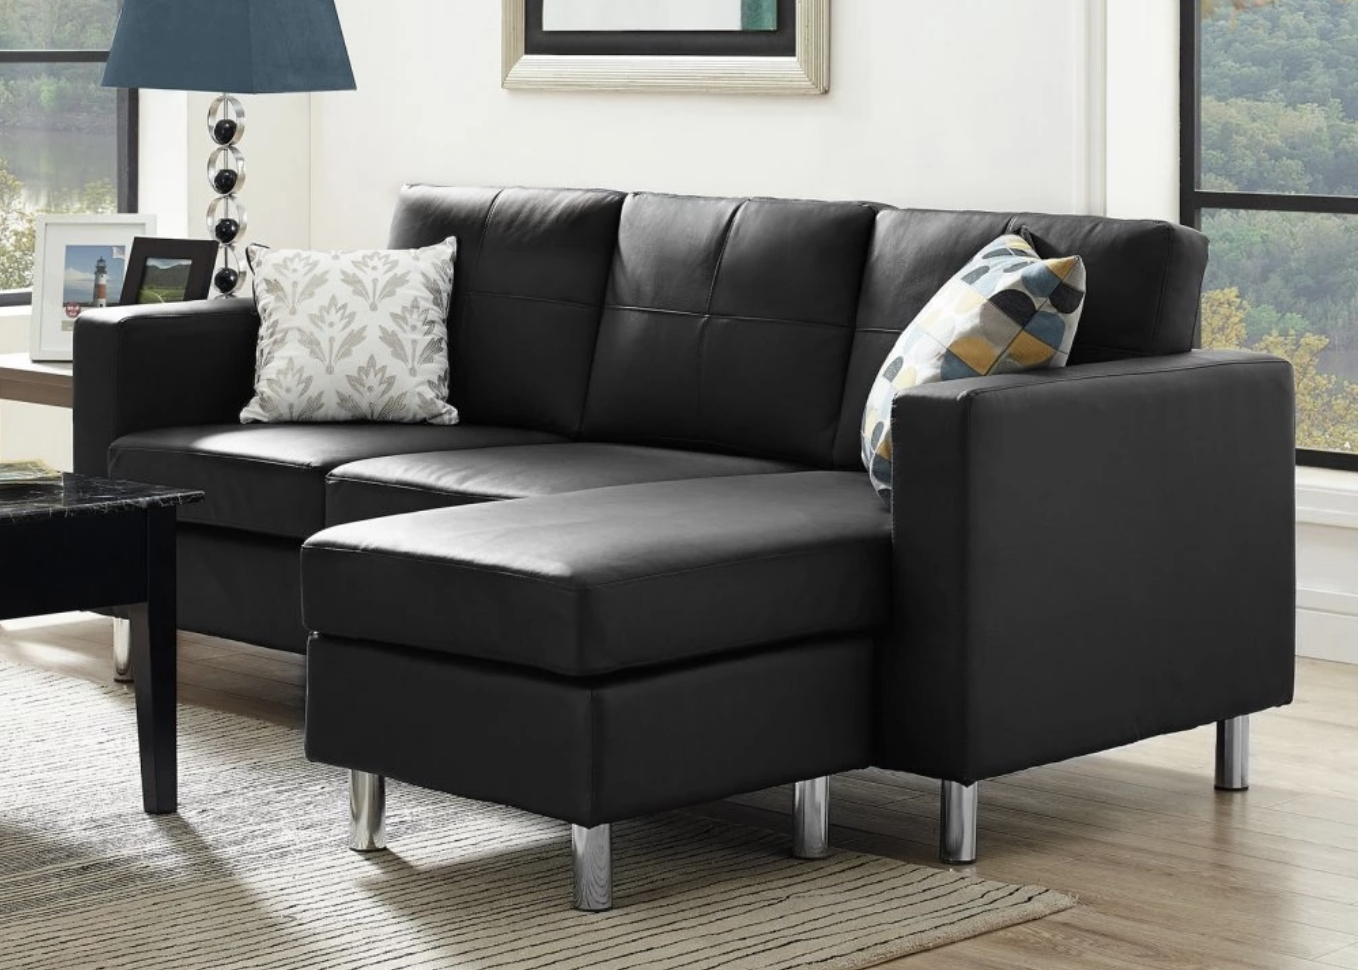 Best And Newest 75 Modern Sectional Sofas For Small Spaces (2018) Pertaining To Small Sectional Sofas For Small Spaces (View 3 of 15)